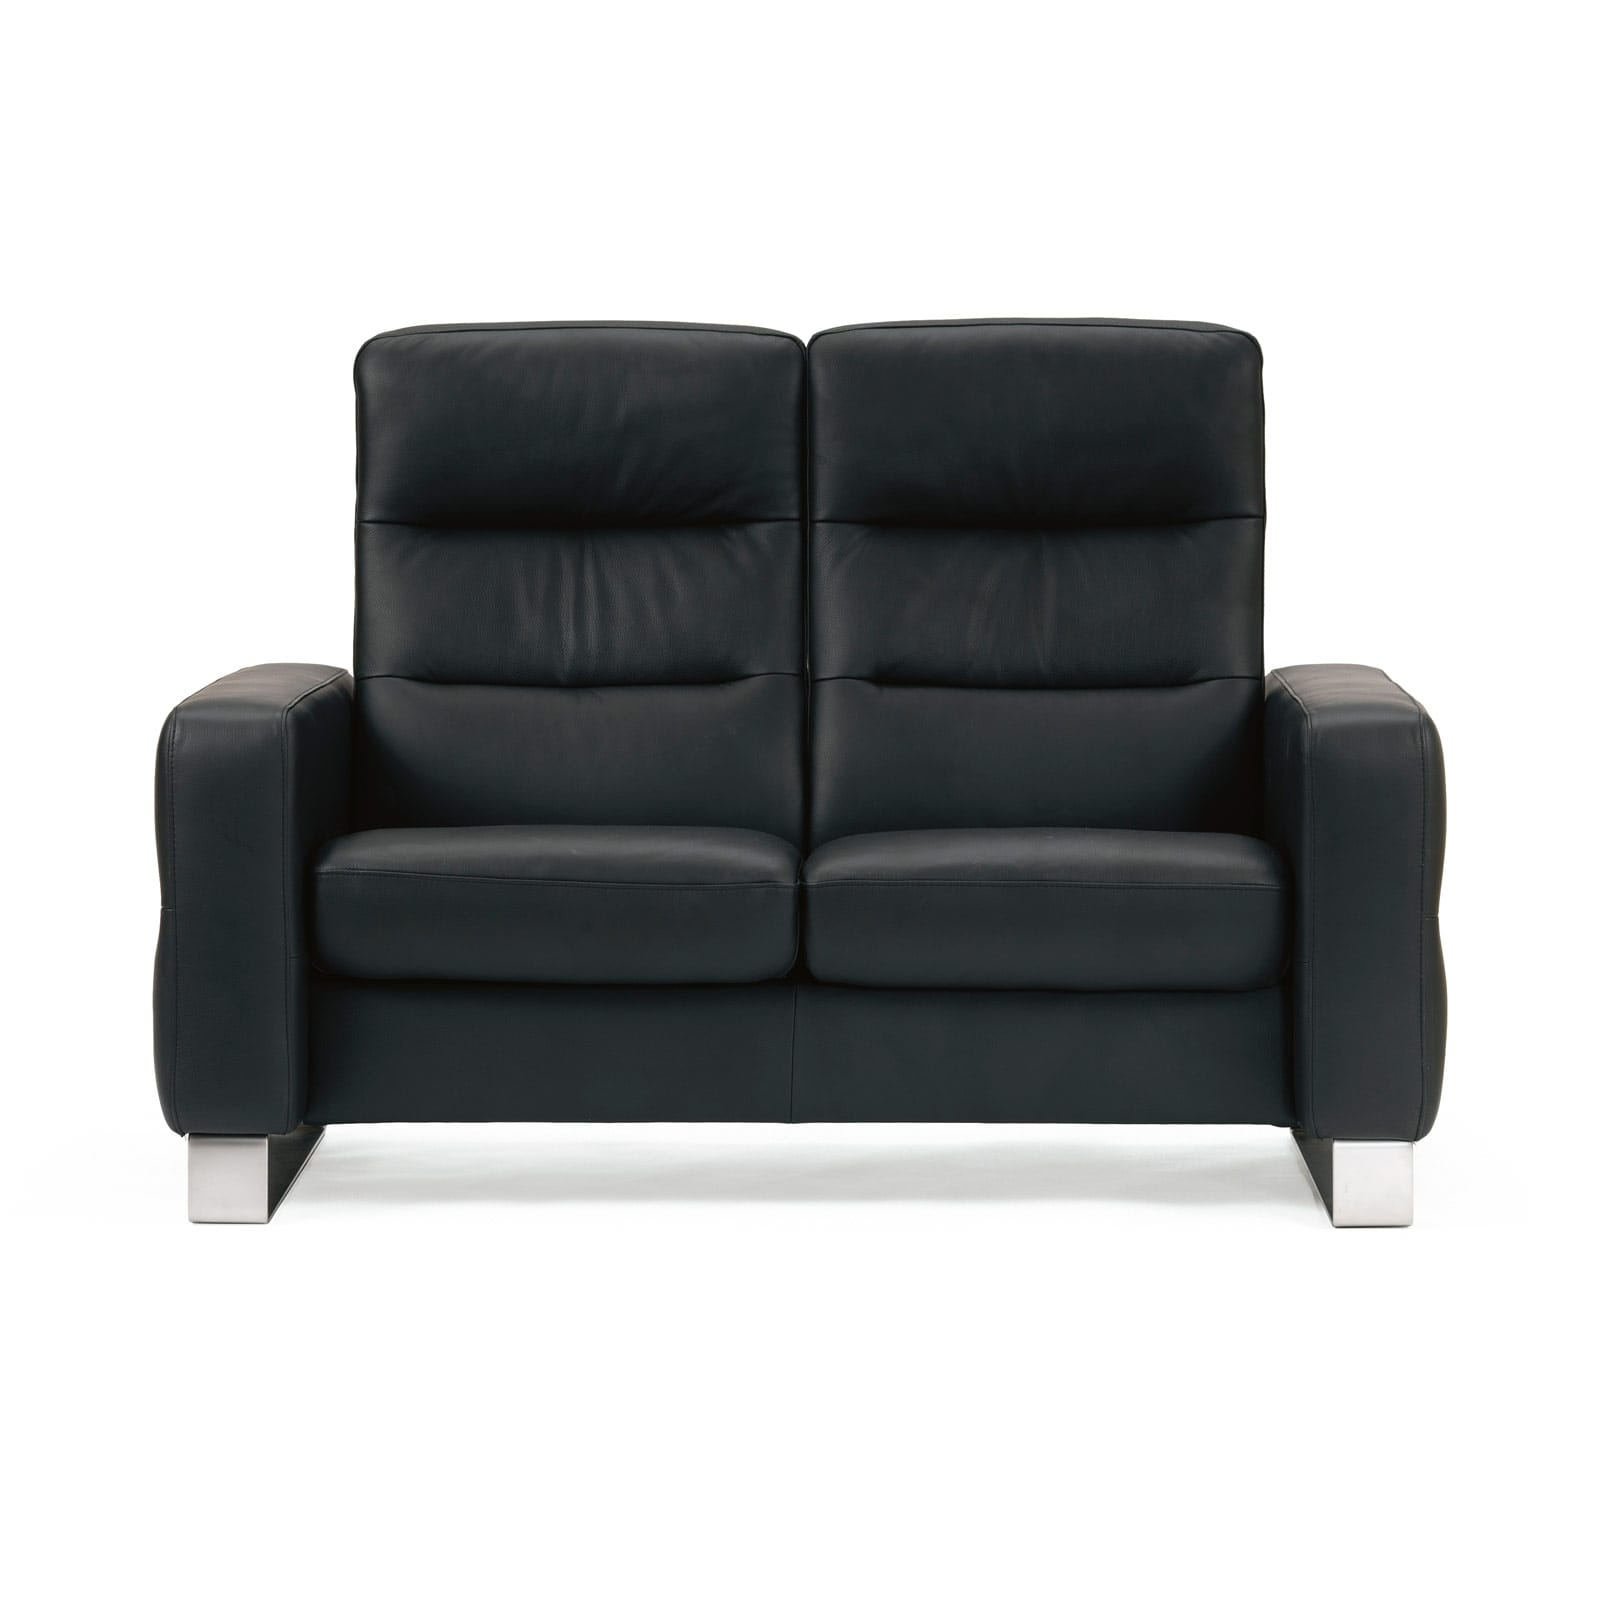 stressless sofa 2 sitzer wave m hoch paloma black. Black Bedroom Furniture Sets. Home Design Ideas